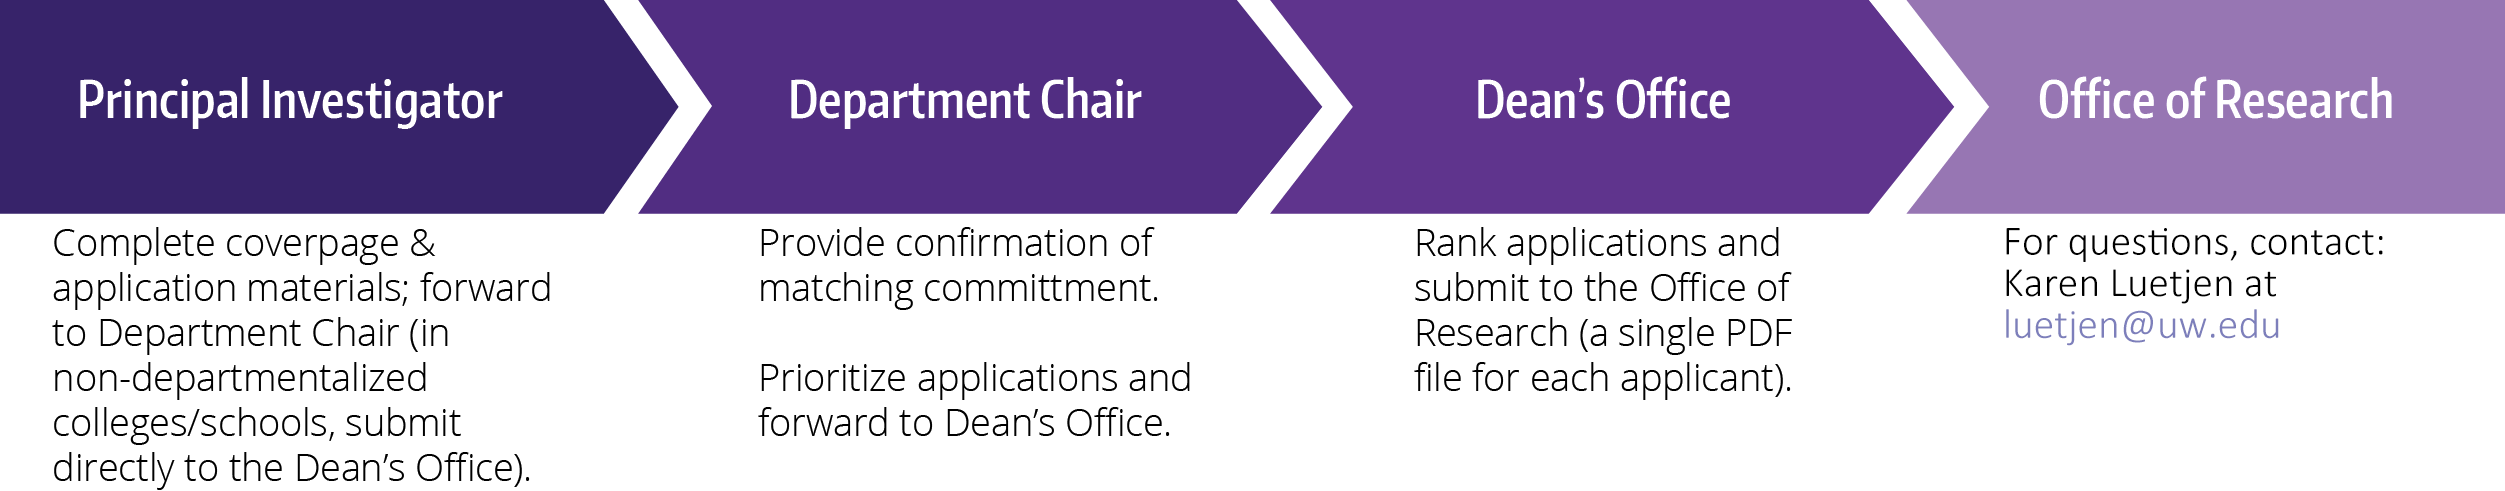 submit applications to department chair, then dean's office, and then to the Office of Research